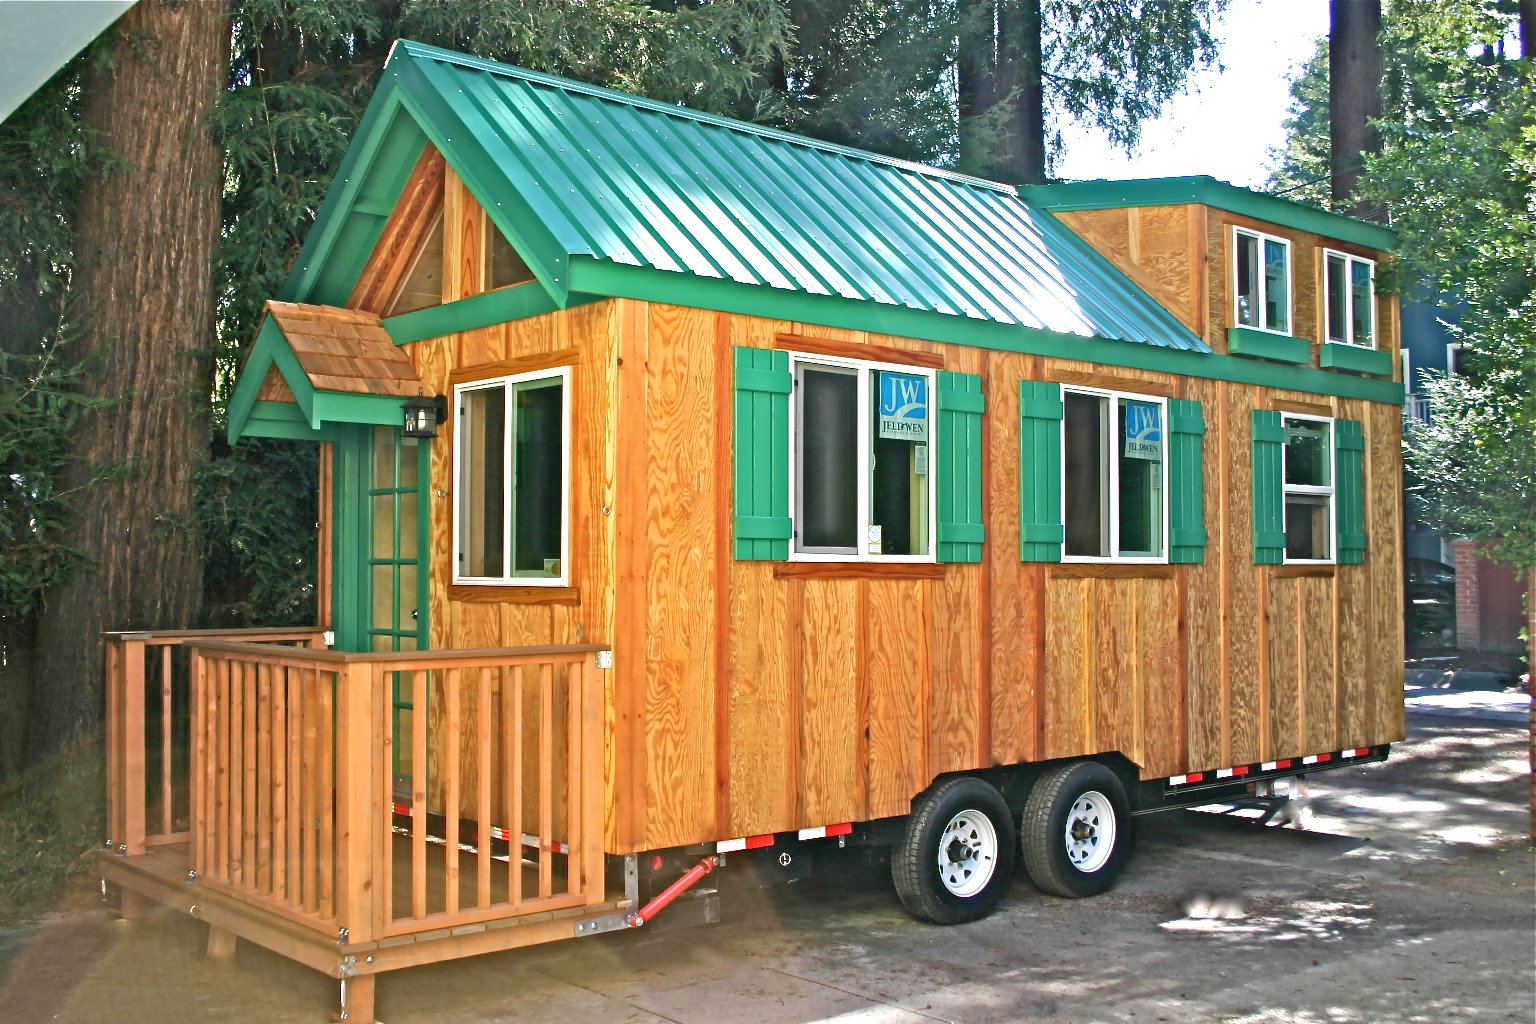 New tiny home on wheels for sale in santa cruz california